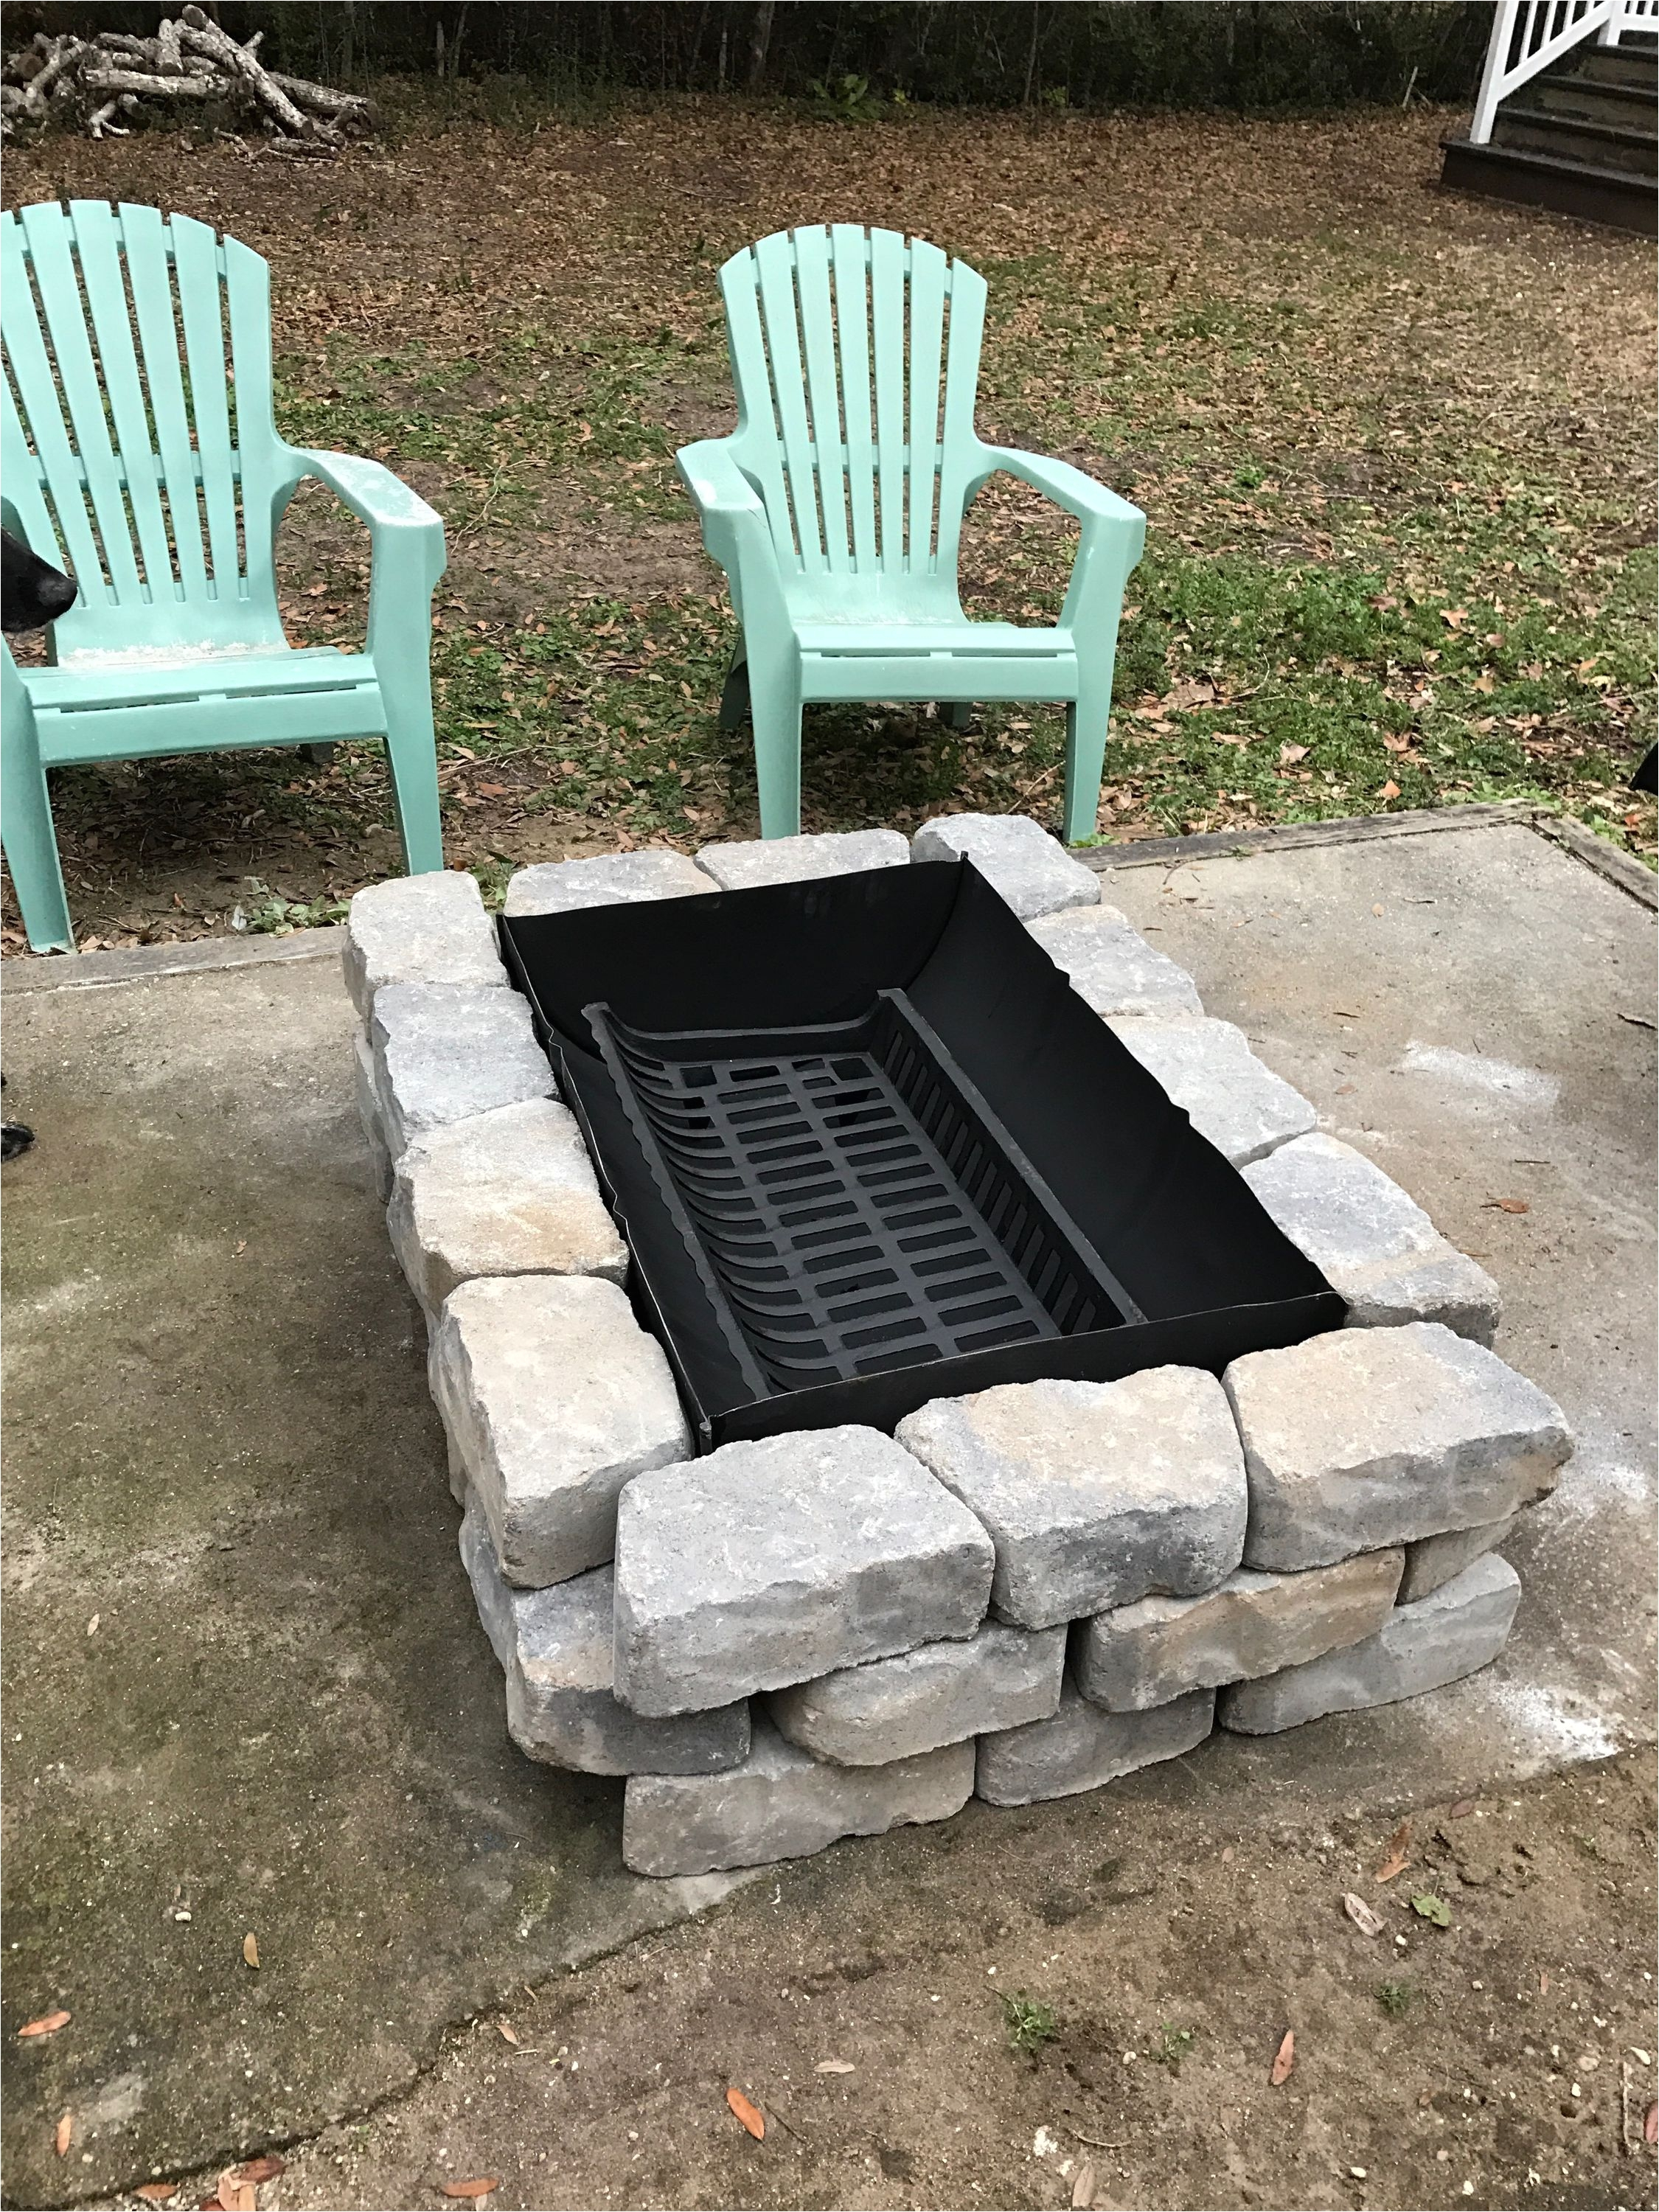 55 Gallon Drum Outdoor Fireplace Inexpensive Fire Pit Made From A 55 Gallon Drum A Grate From